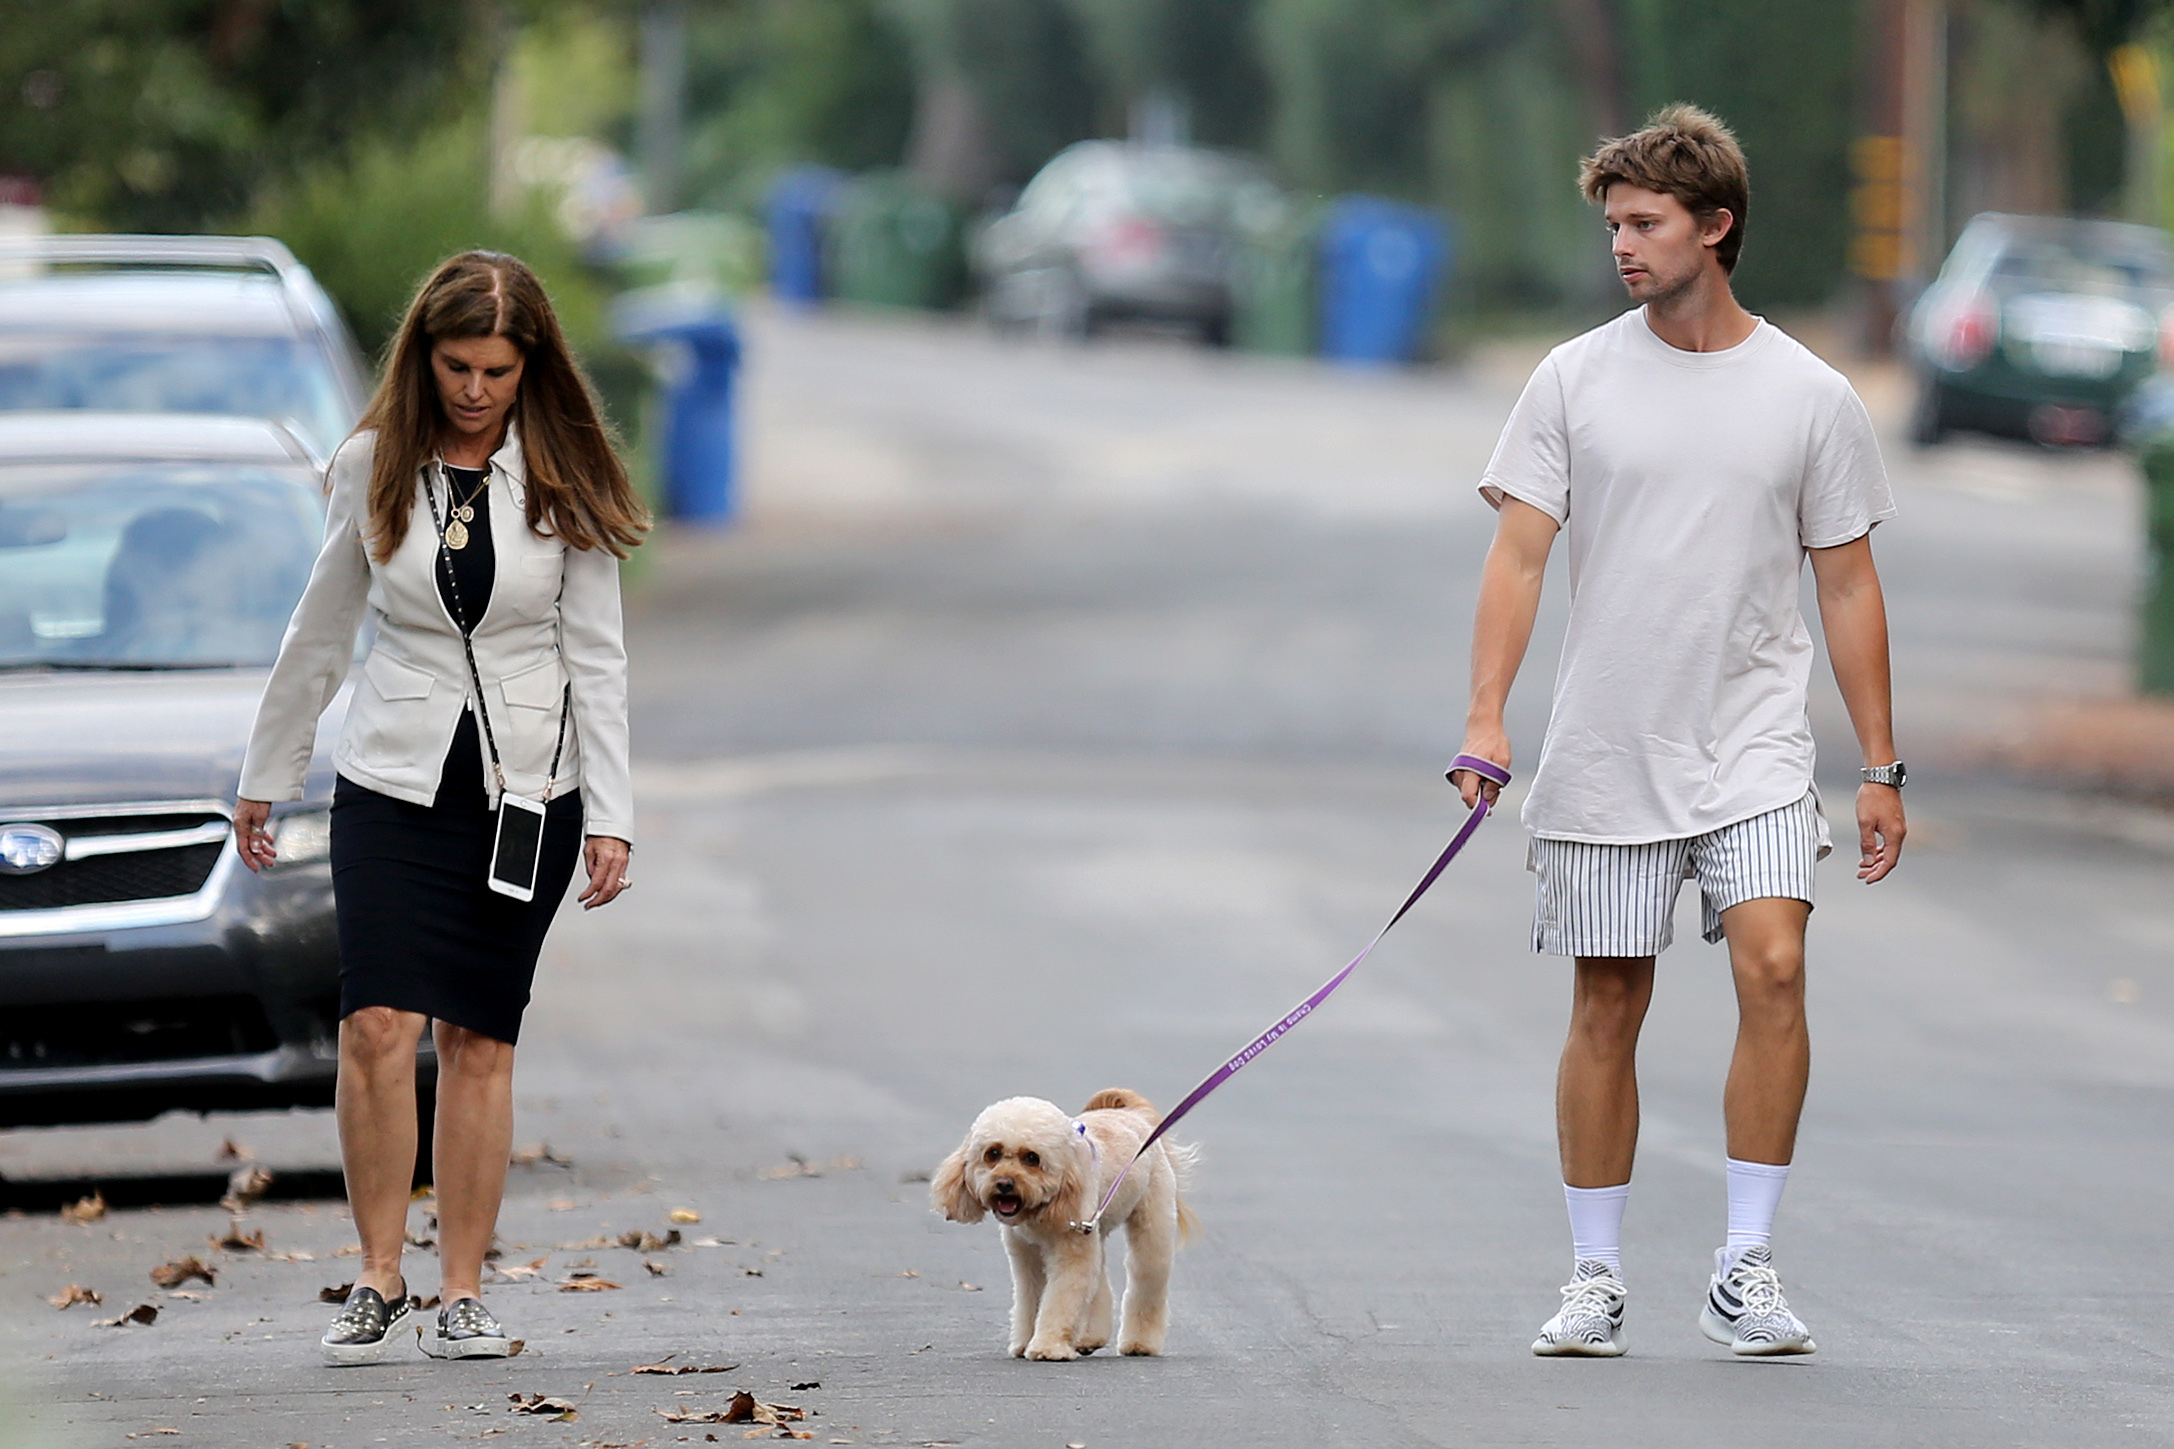 Patrick Schwarzenegger and his mother Maria Shriver were spotted taking an evening stroll with his furry friend while out in the Brentwood neighborhood of Los Angeles on Sept. 11, 2017.